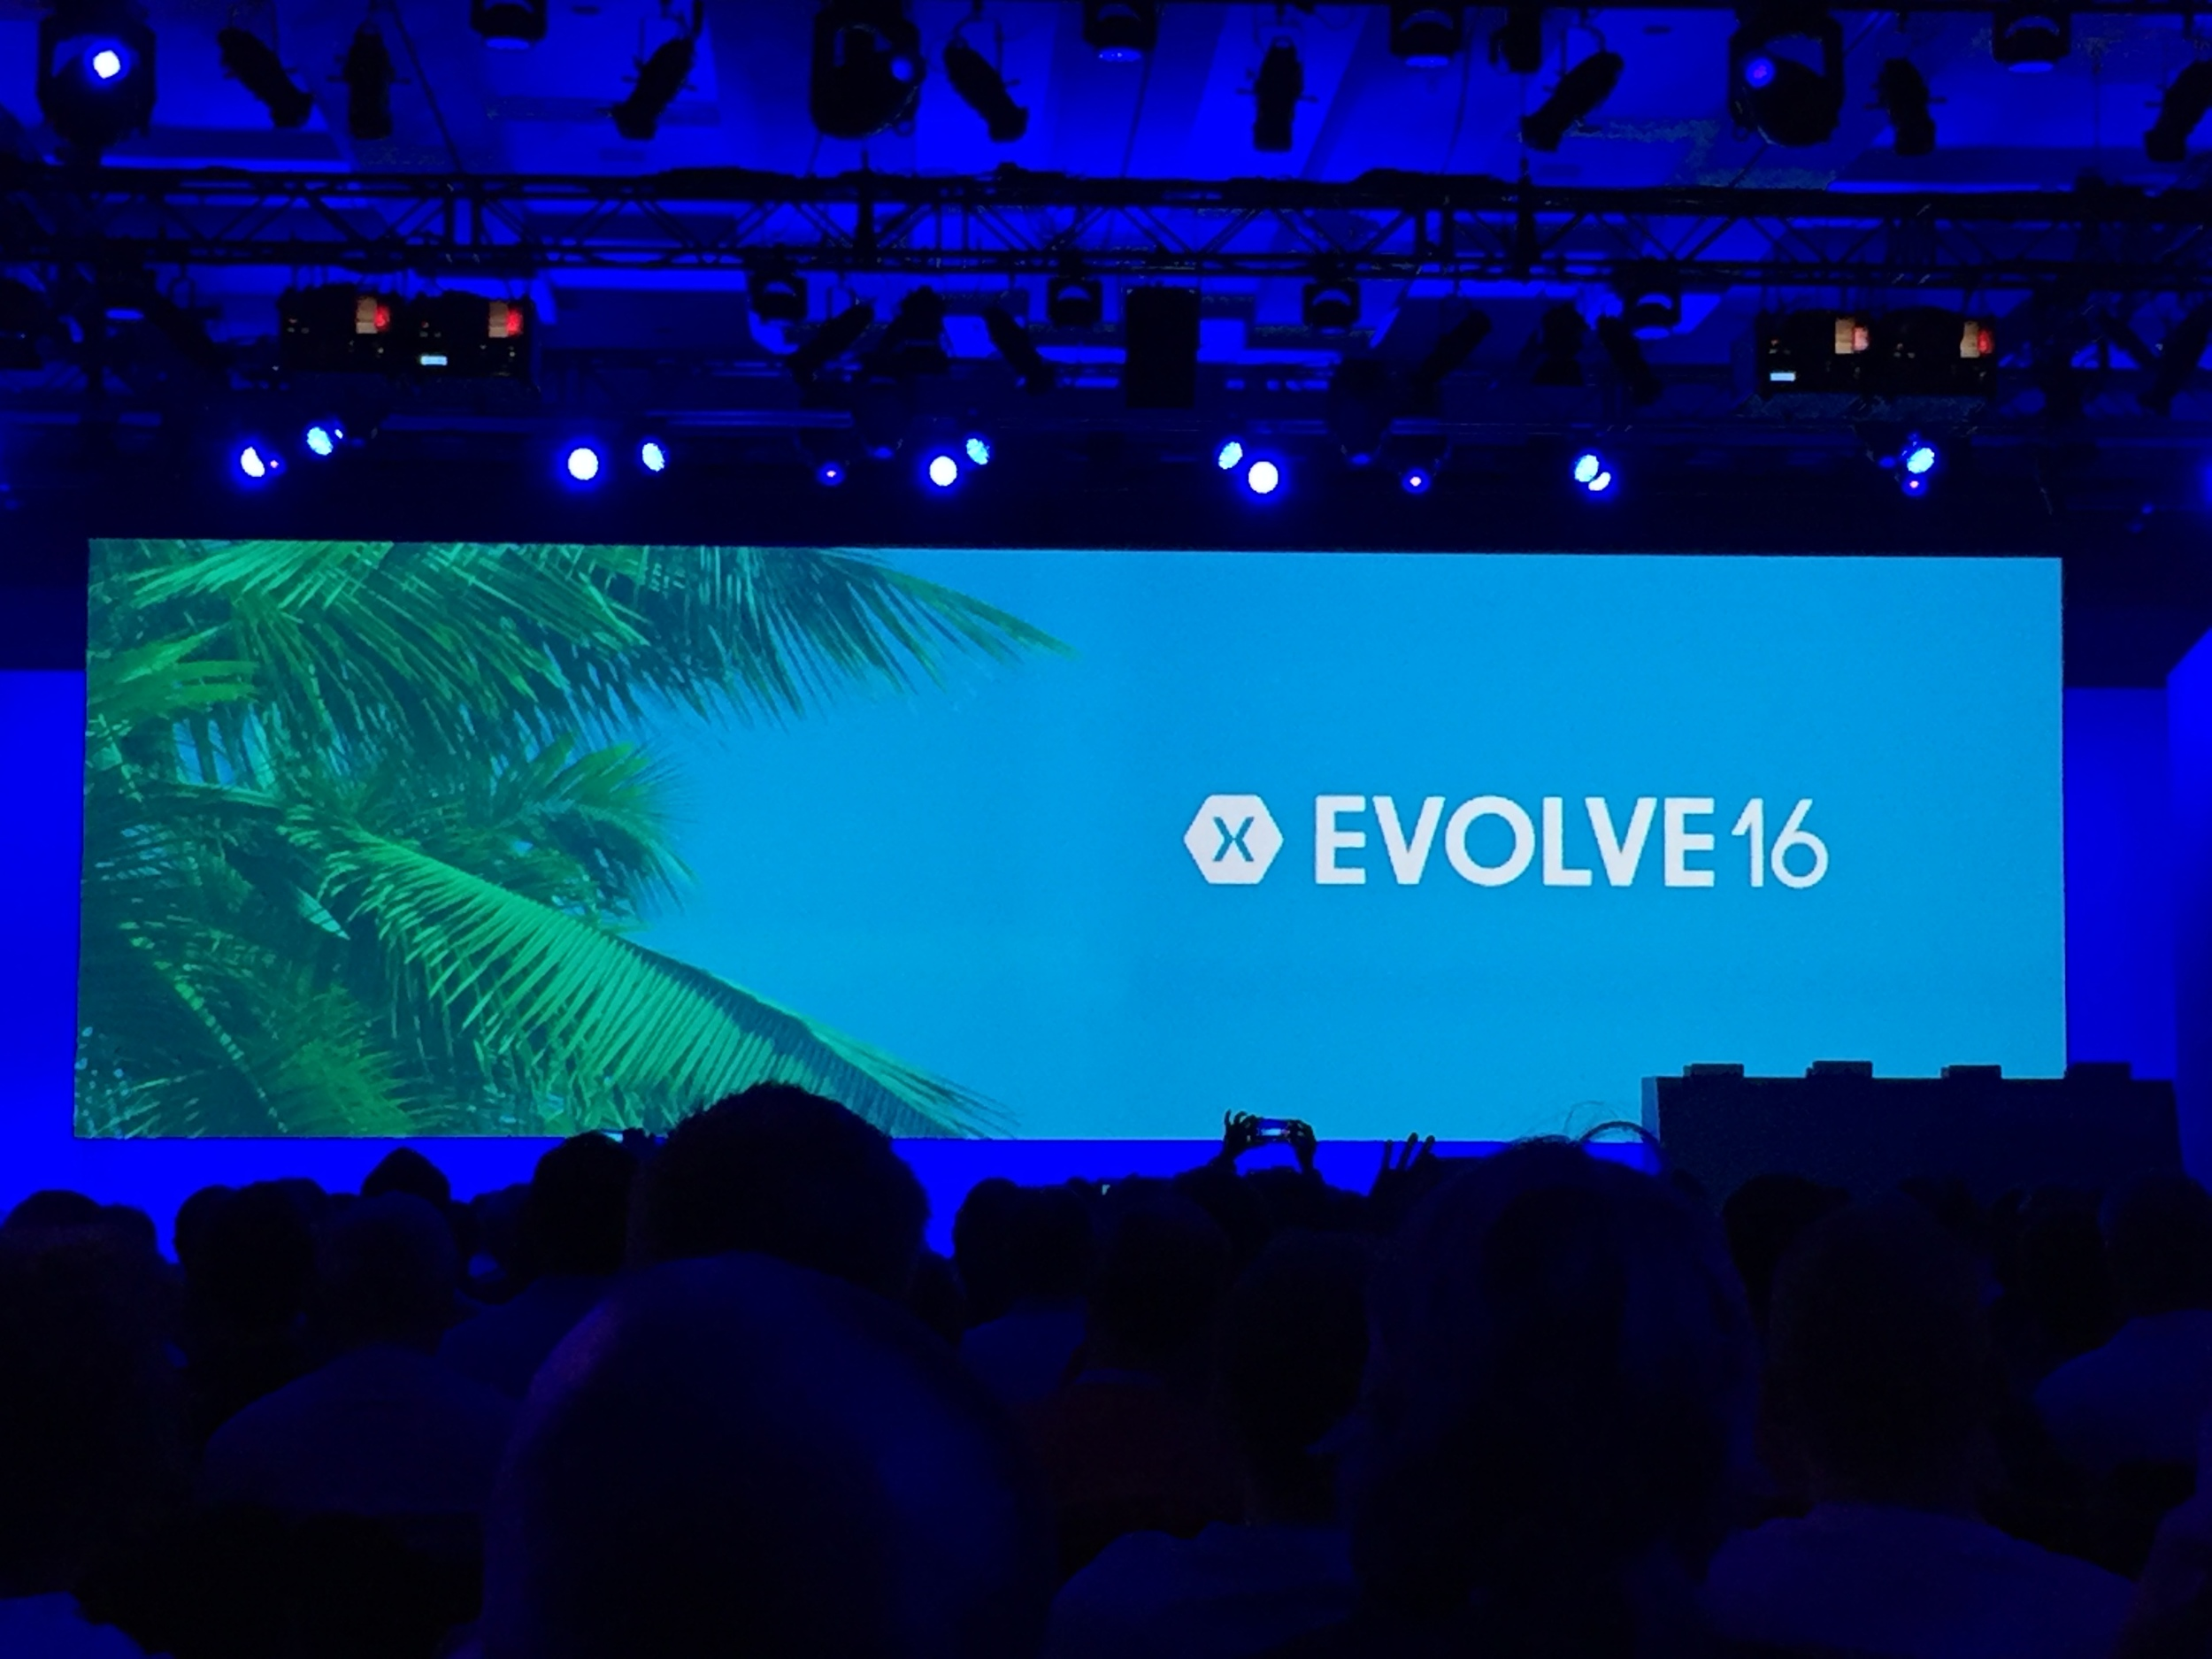 Xamarin Evolve 2016 - One of the major app developer conferences